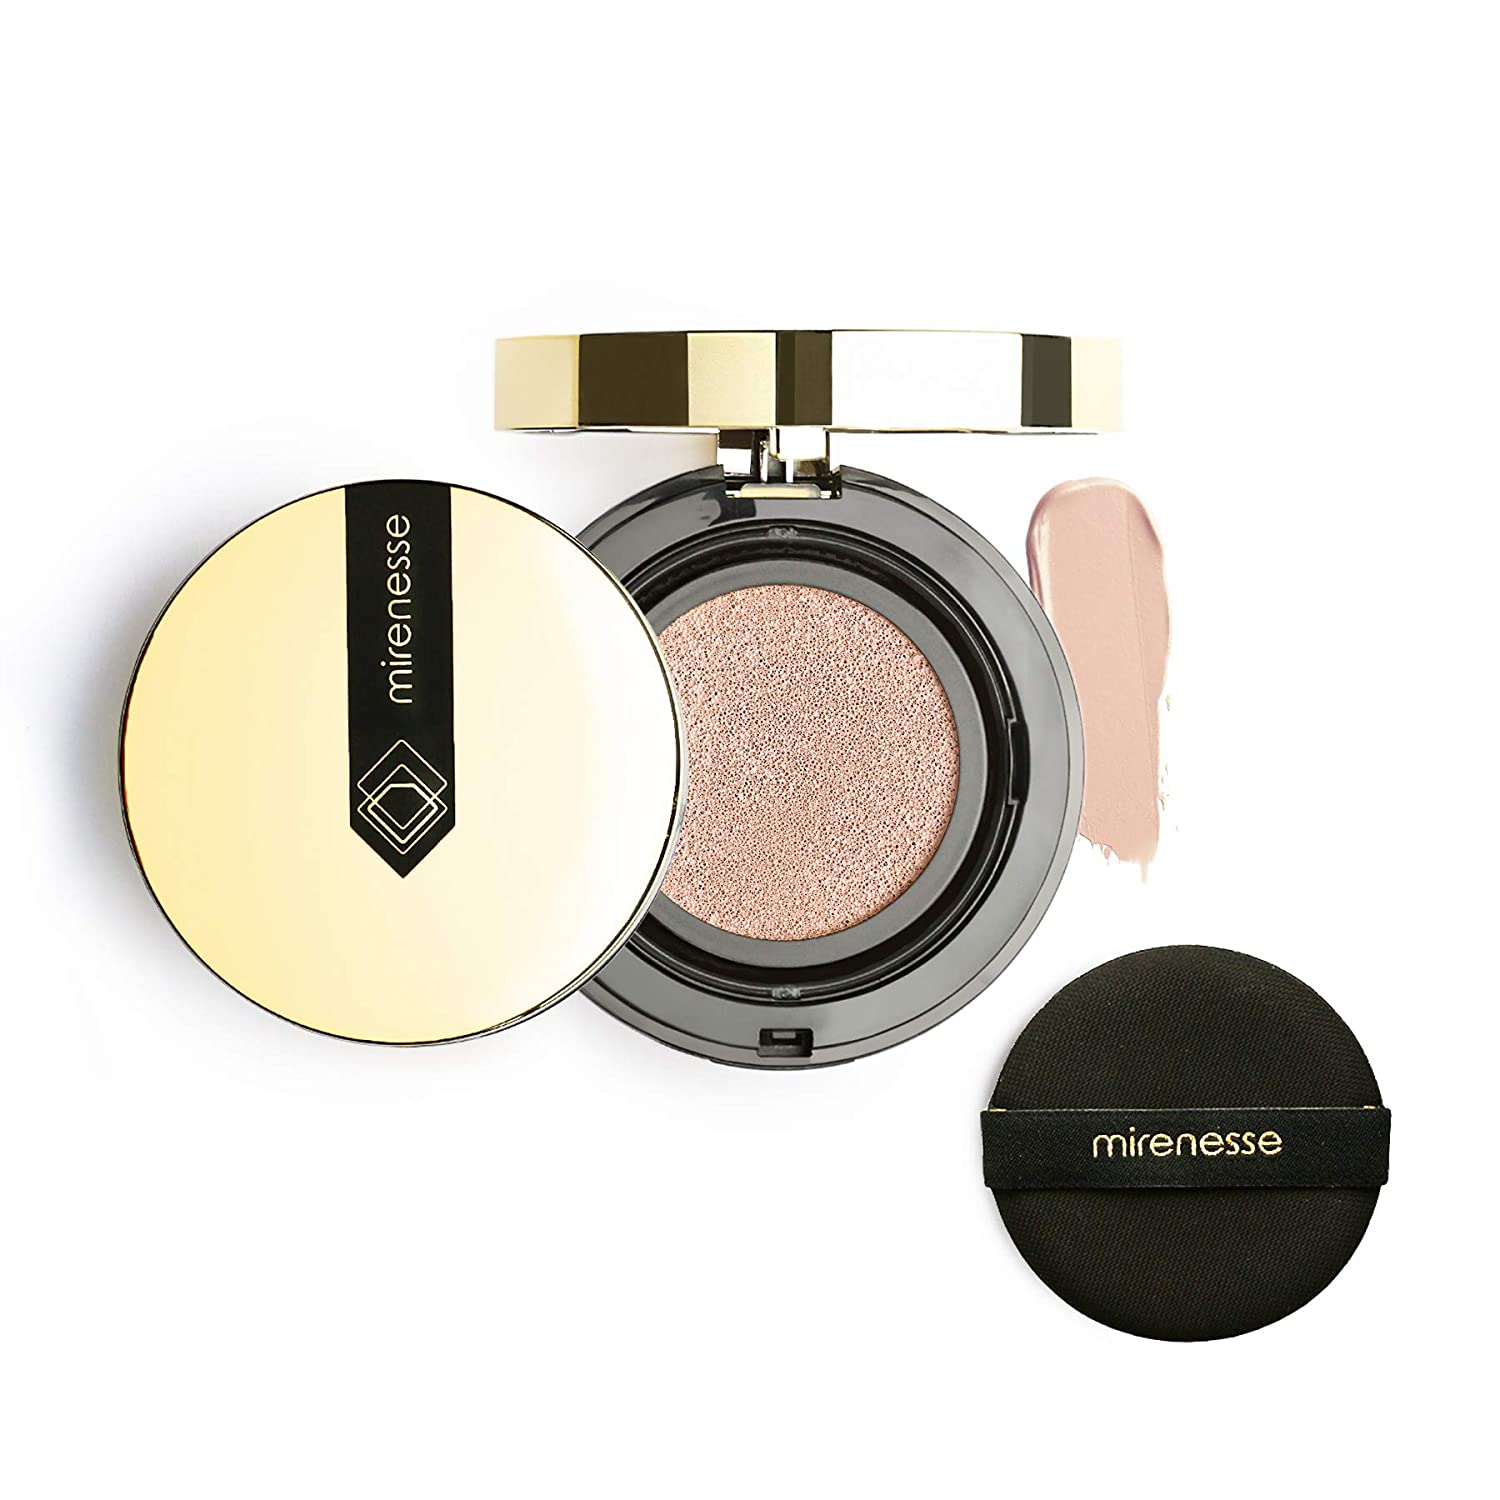 Mirenesse 10 Collagen Cushion Compact Airbrush Foundation Liquid Powder, Buildable Coverage, Instantly Flawless & Glowing Skin, Vegan & Toxin Free, Vienna 0.52oz